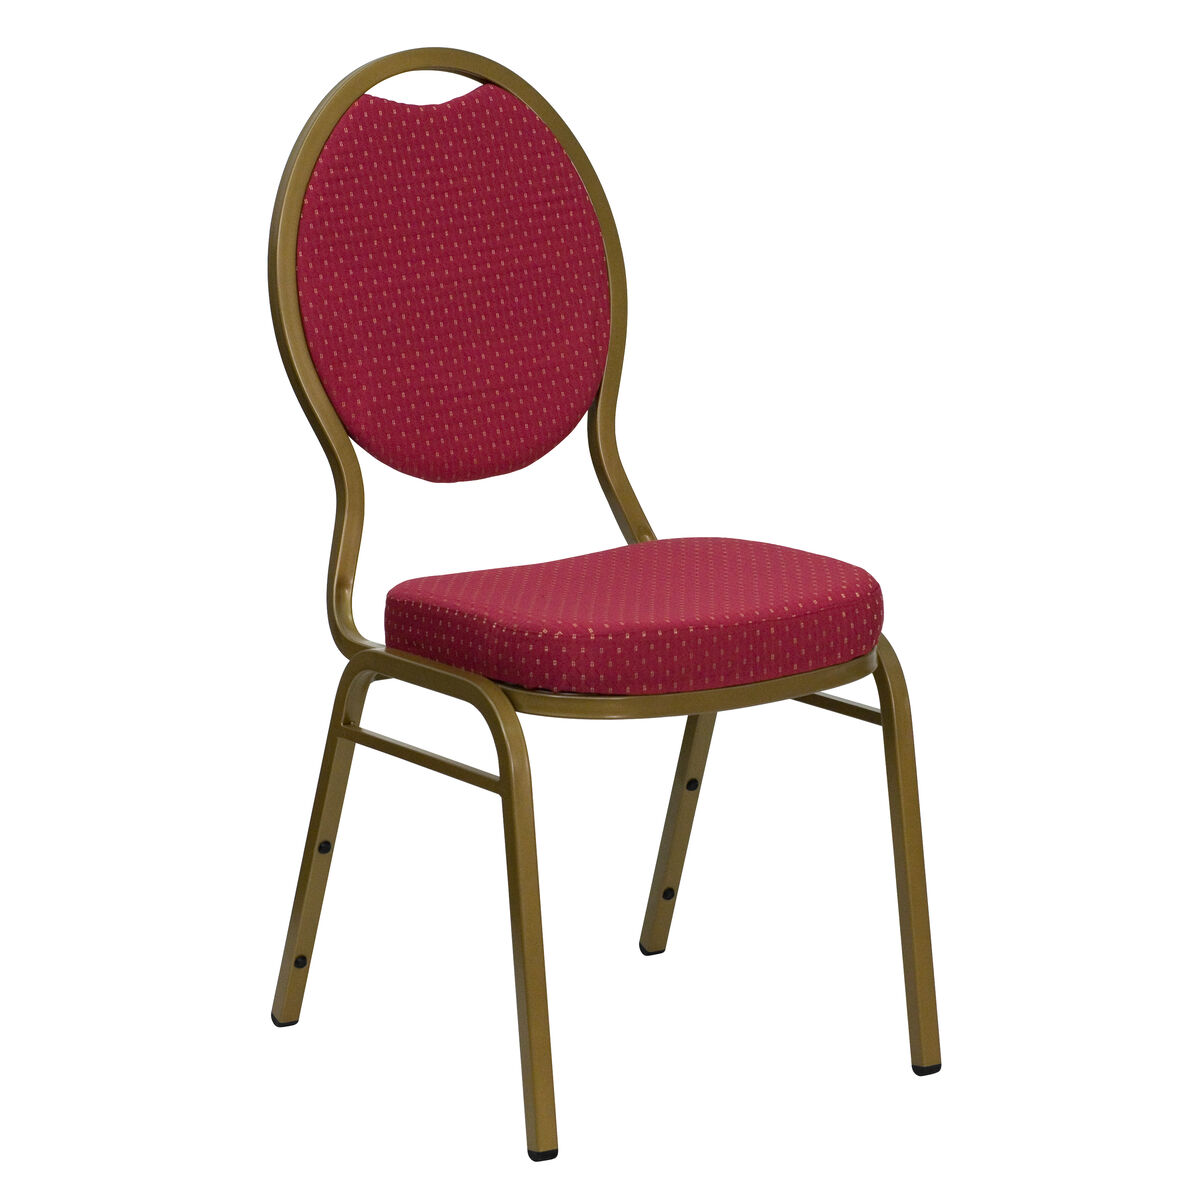 This durable Banquet Chair is an excellent option for churches, banquet halls, training rooms, hotels, convention centers and schools. Add banquet chairs to your home dining table to add a contrasting